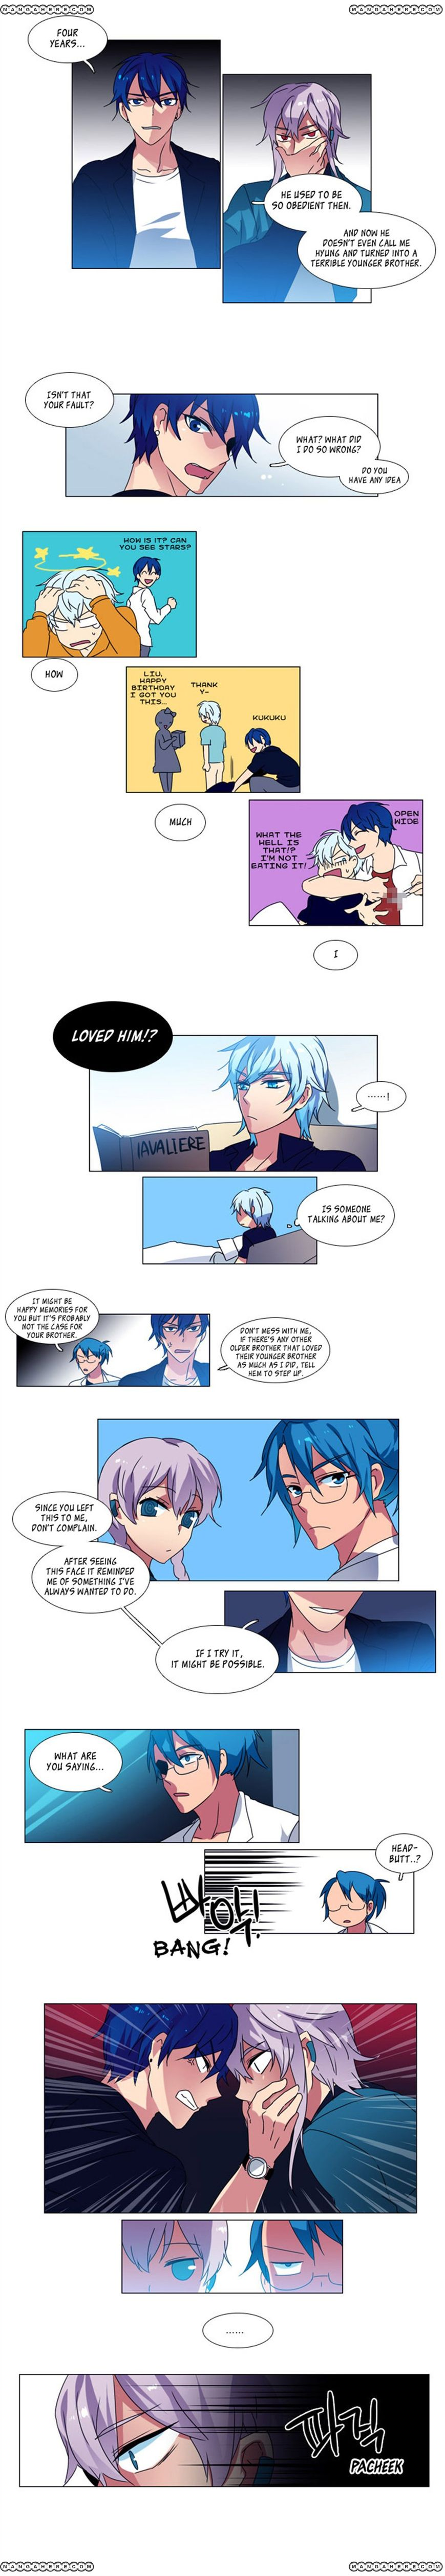 Wonted 28 Page 3